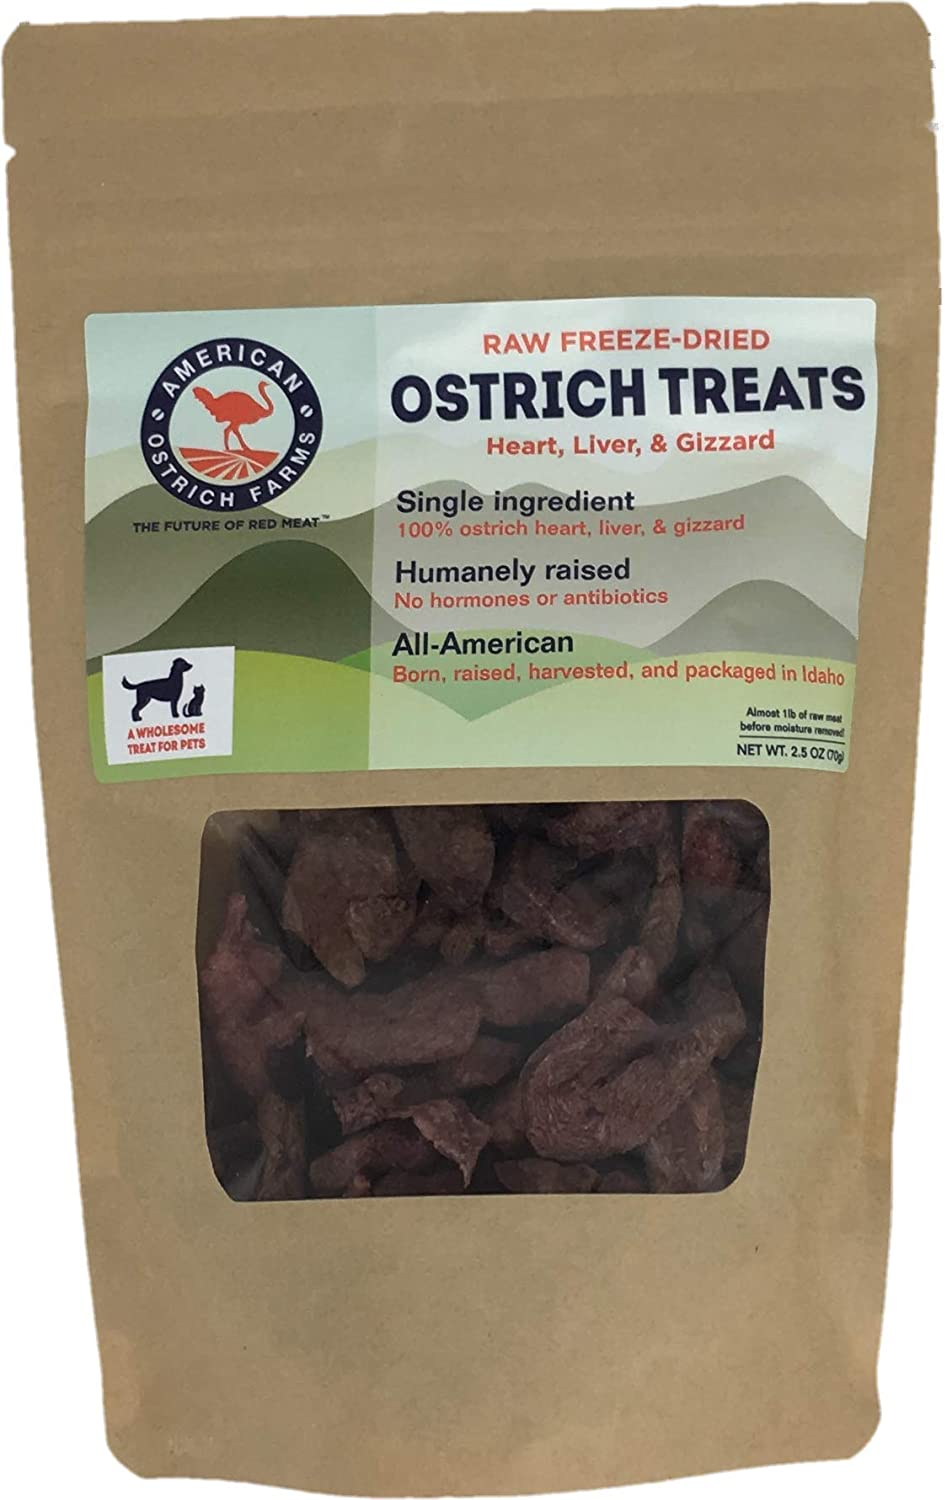 Raw Freeze-Dried Ostrich Treats for Pets: Single Ingredient, All-American, 100% Heart, Liver, Gizzard